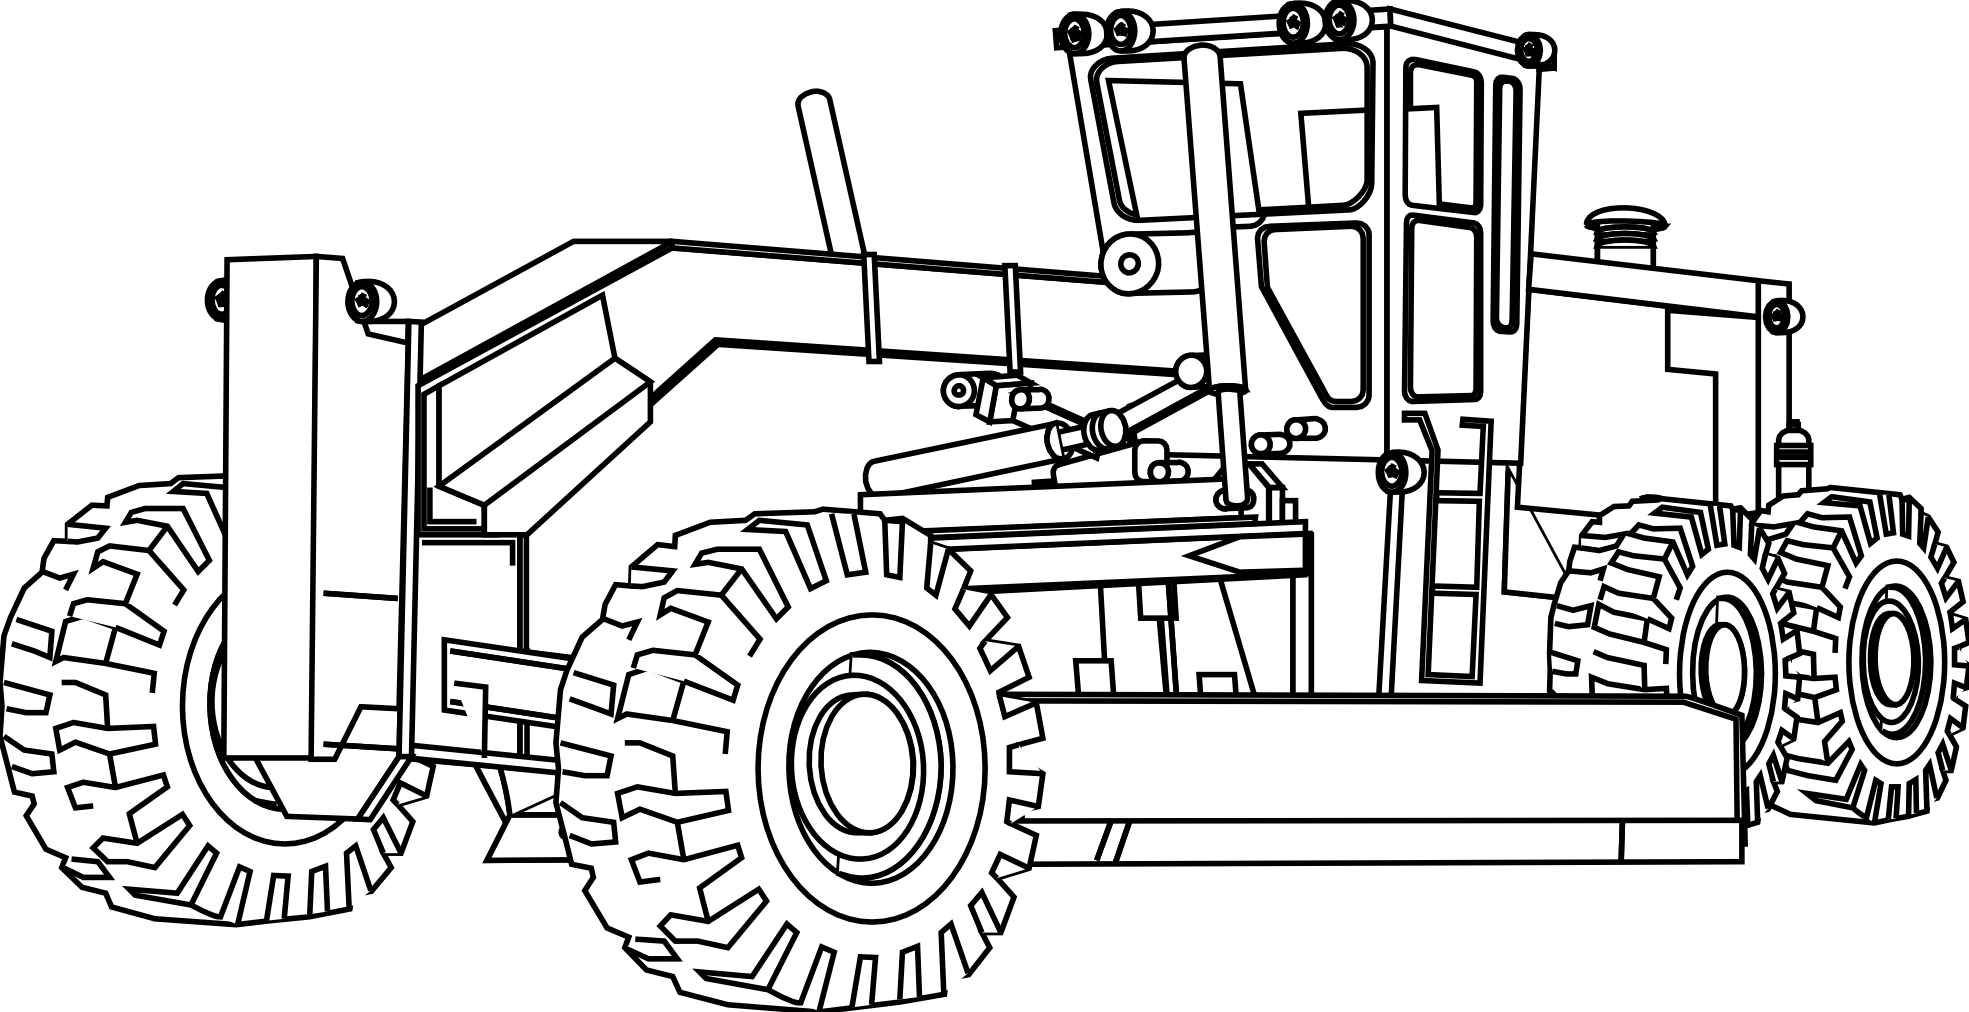 Printable Pictures of Construction Equipment | Artfavor Heavy ...